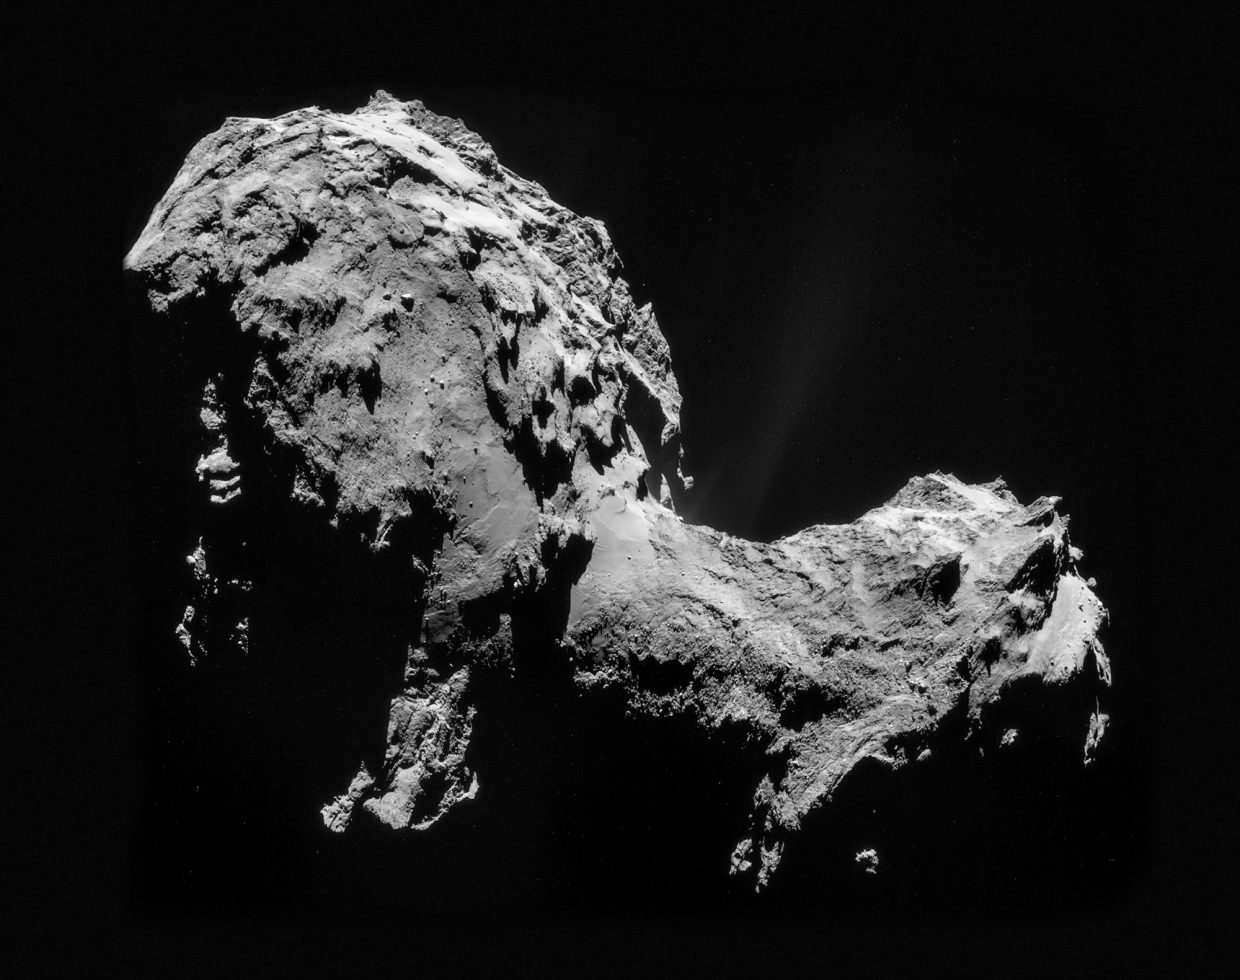 This mosaic of images reveals the unusual shape and surface of Comet Churyumov-Gerasimenko, the target of the European Space Agency's Rosetta orbiter and Philae lander. Philae will attempt the first controlled landing on a comet's nucleus Wednesday morning.